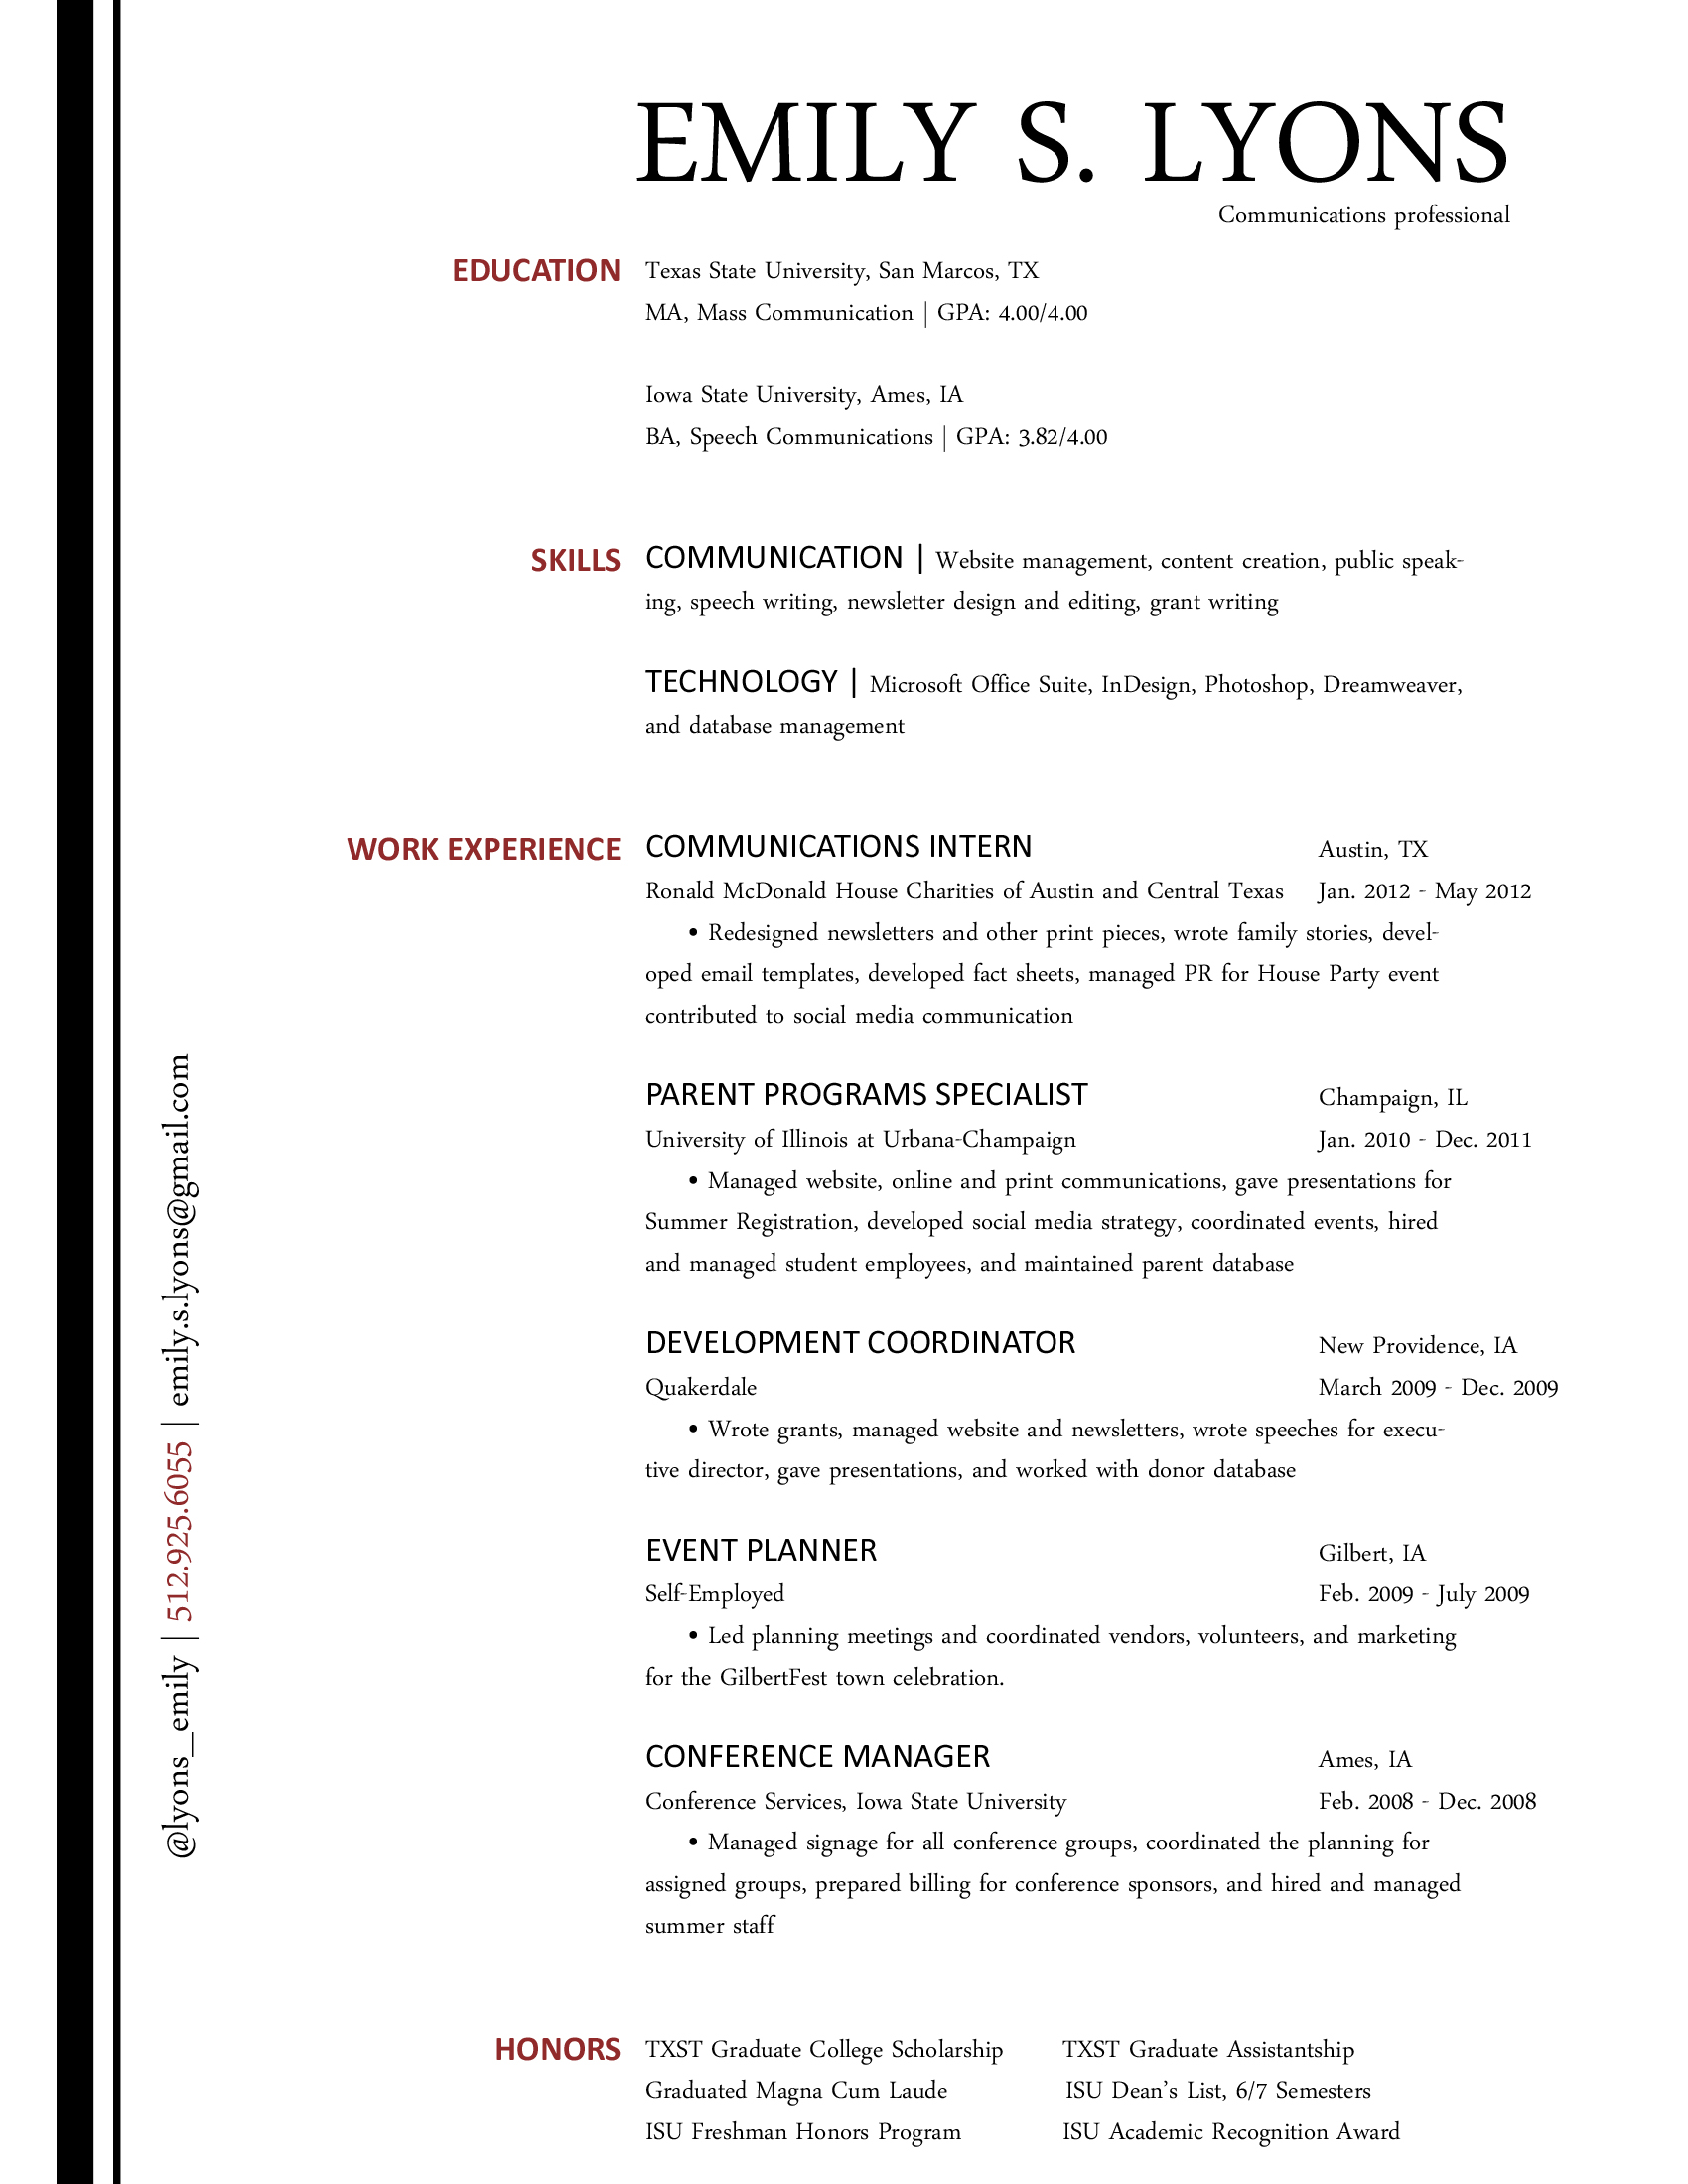 Resume Sample Waitress Resume resume for a waitress great sample resumes event planning proposal job server waiter templates cipanewsletter emilyresume short resumehtml